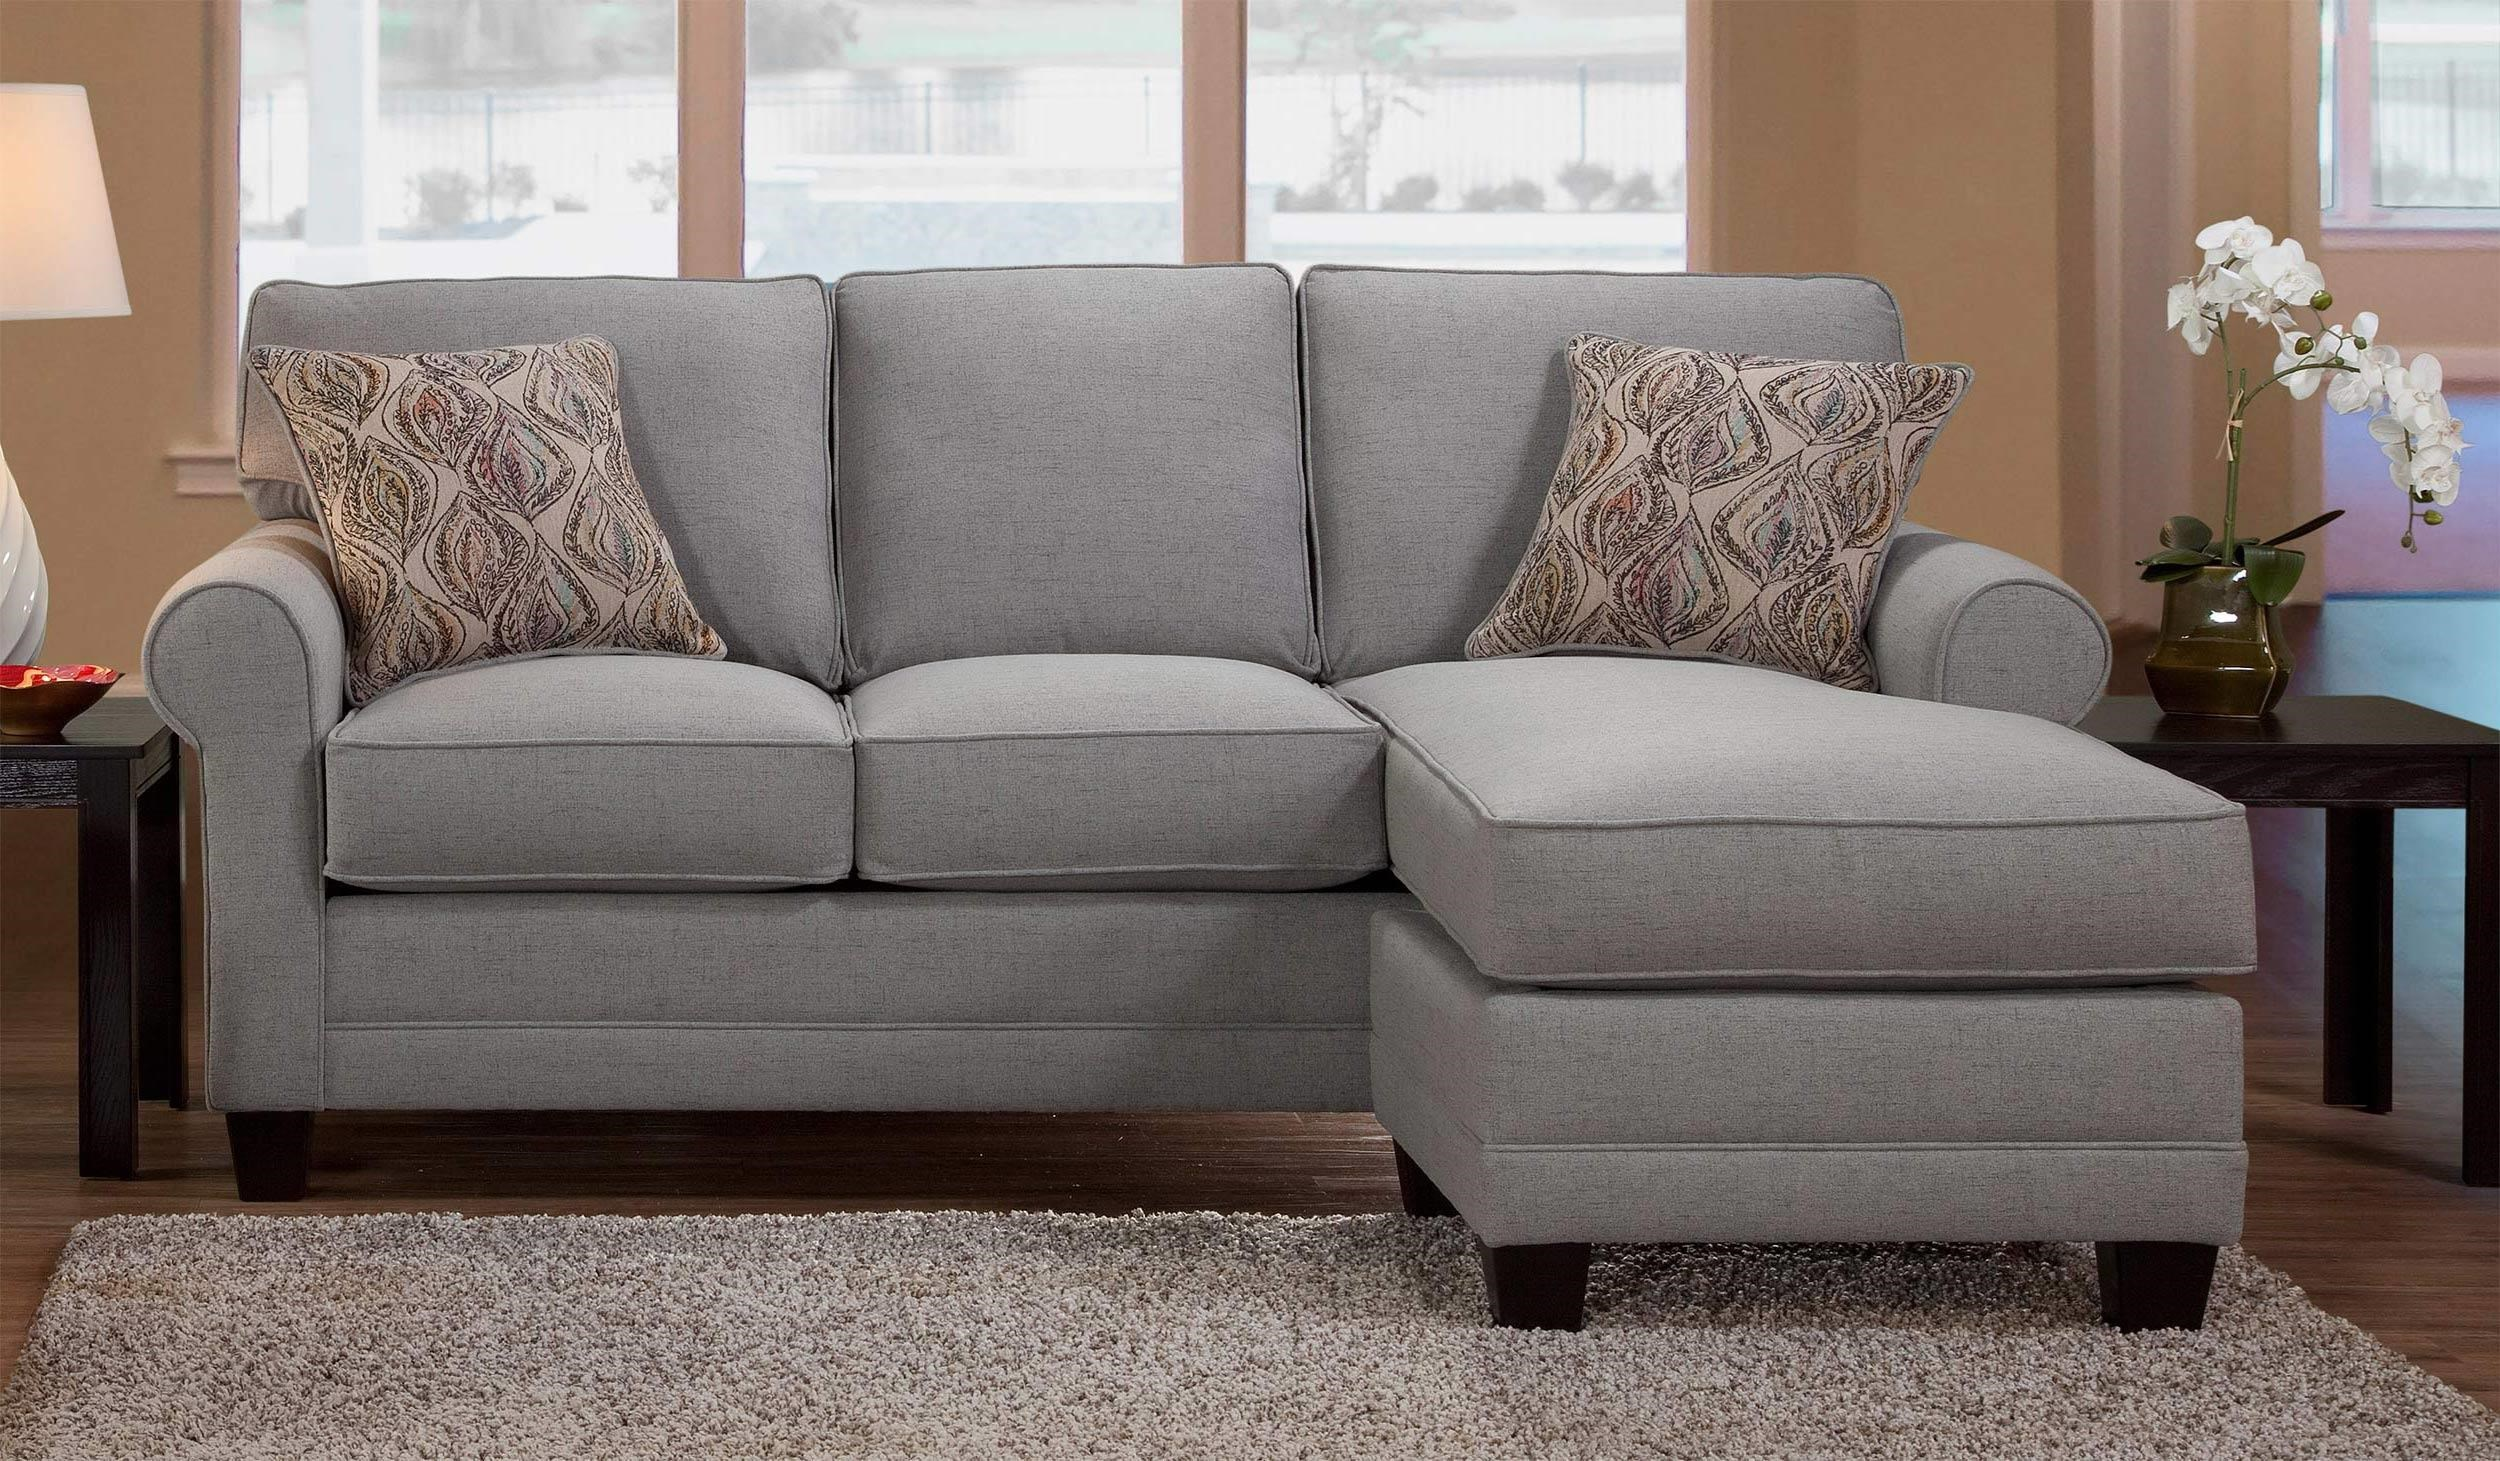 Serta Sofa Click To Enlarge Additional Images With Serta